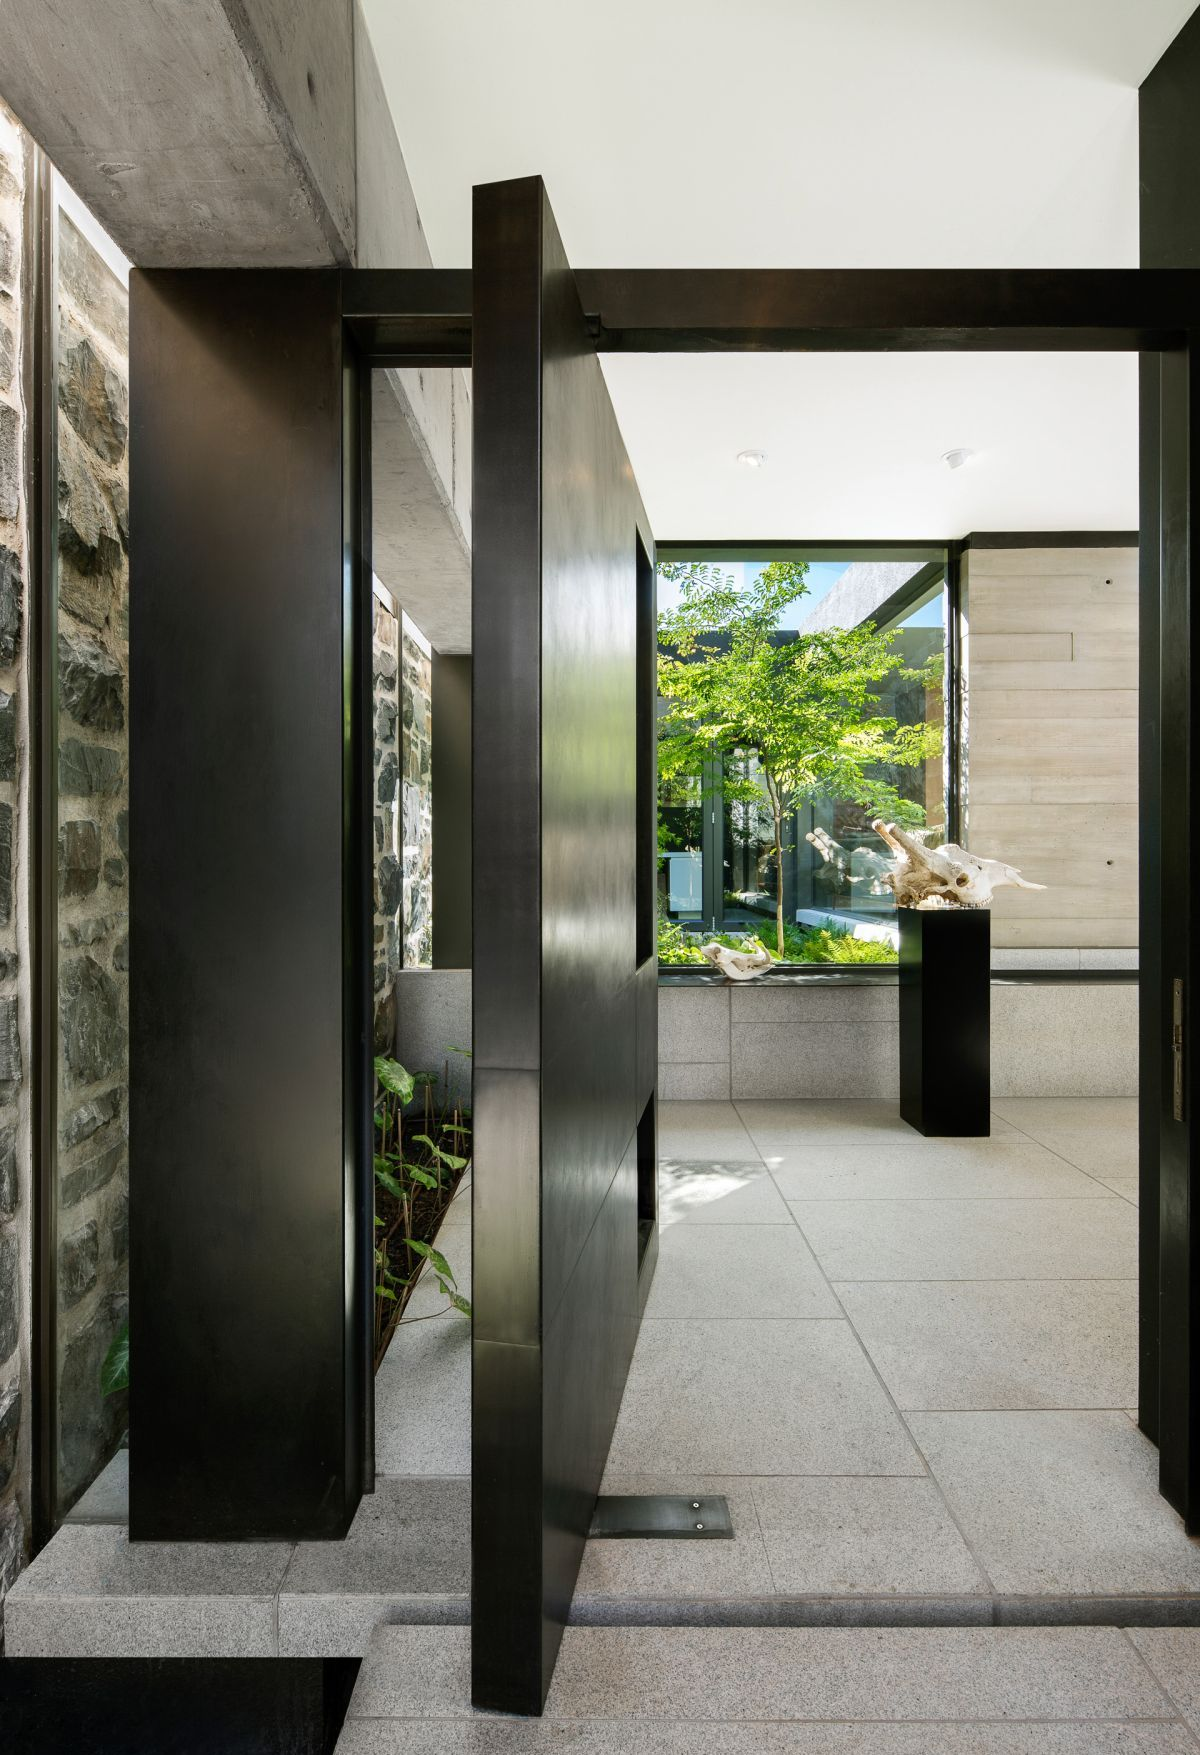 The front door is made of metal and is pivoting